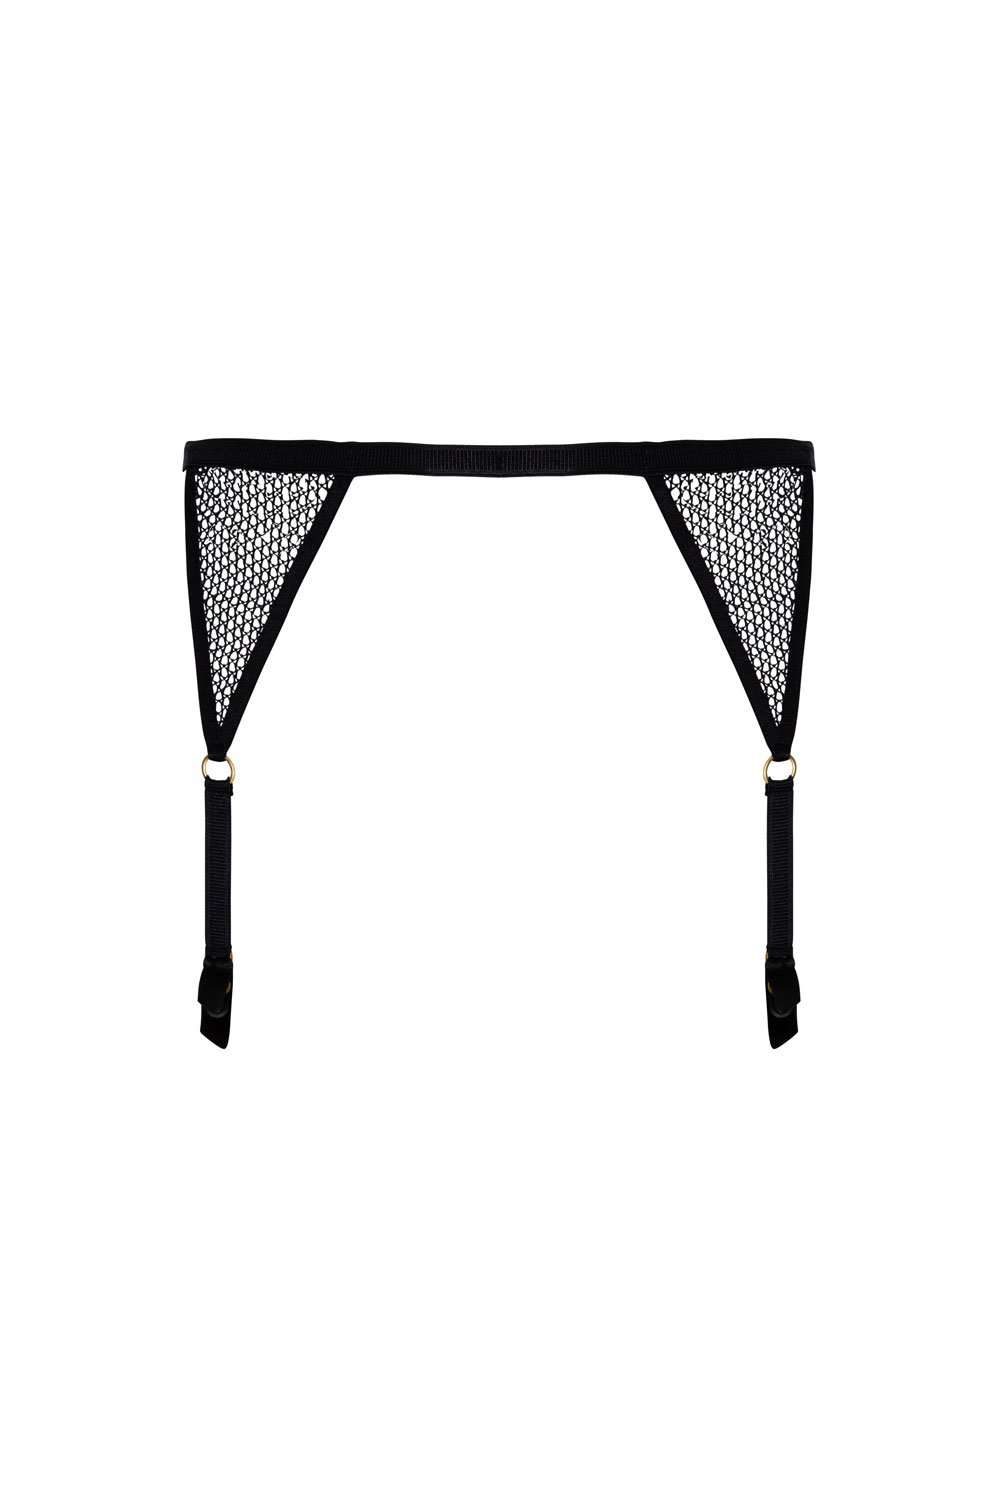 Bracli London Suspender Belt